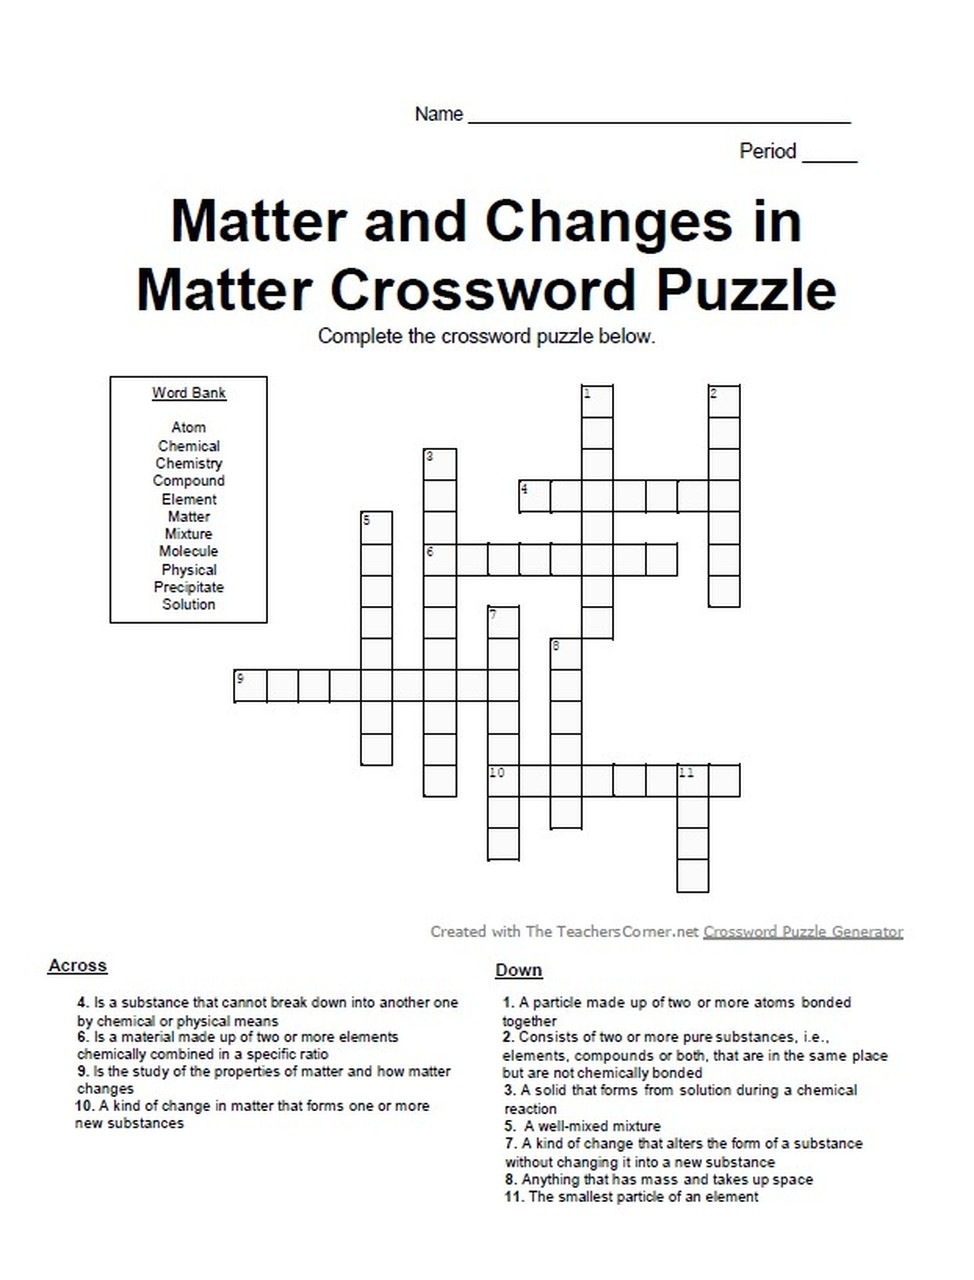 Introduction To Chemistry Matter And Changes In Matter Crossword Puzzle Changes In Matter Crossword Puzzle Chemistry